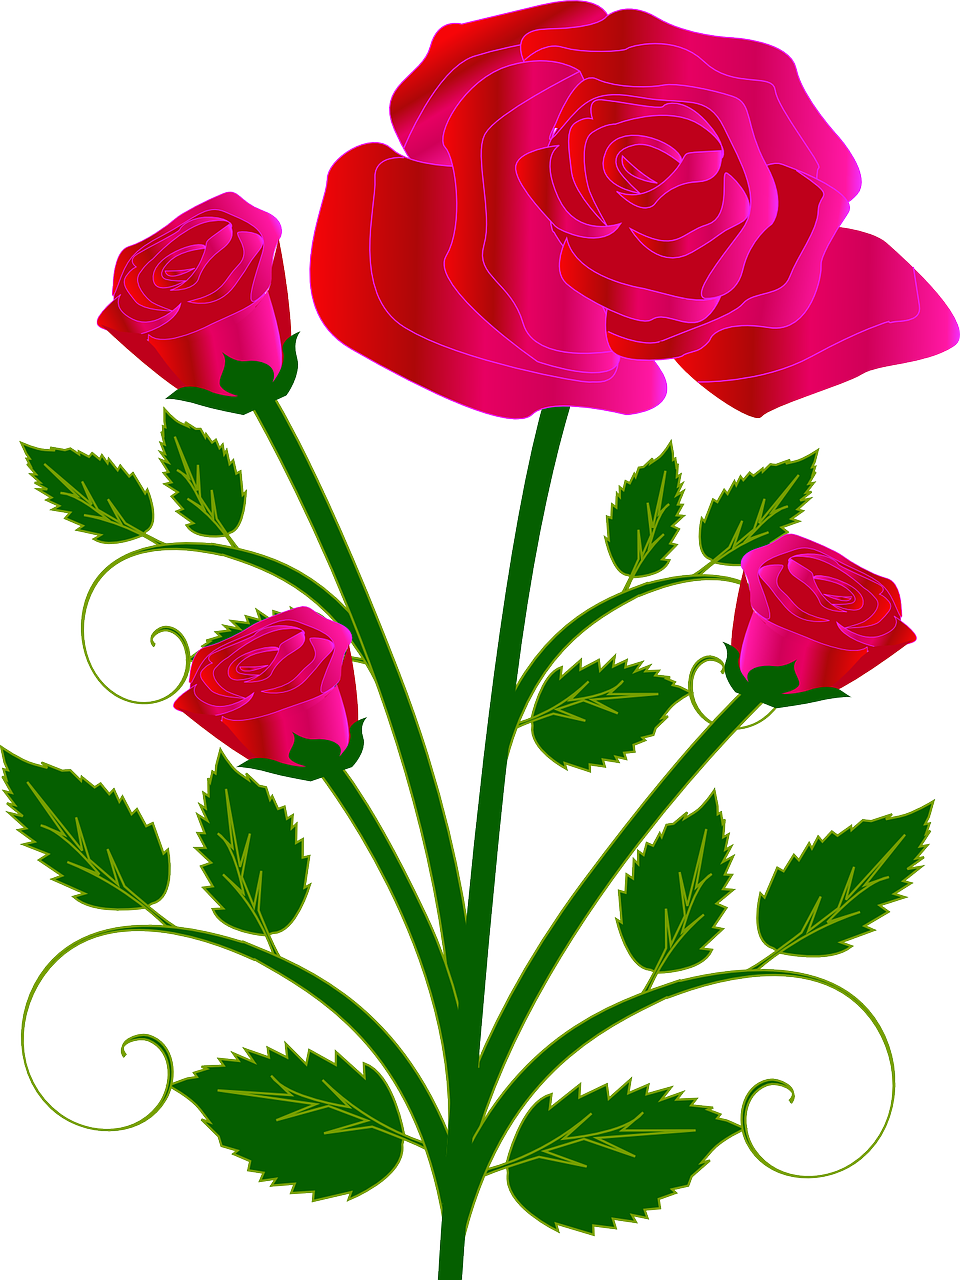 how to make a rose 3